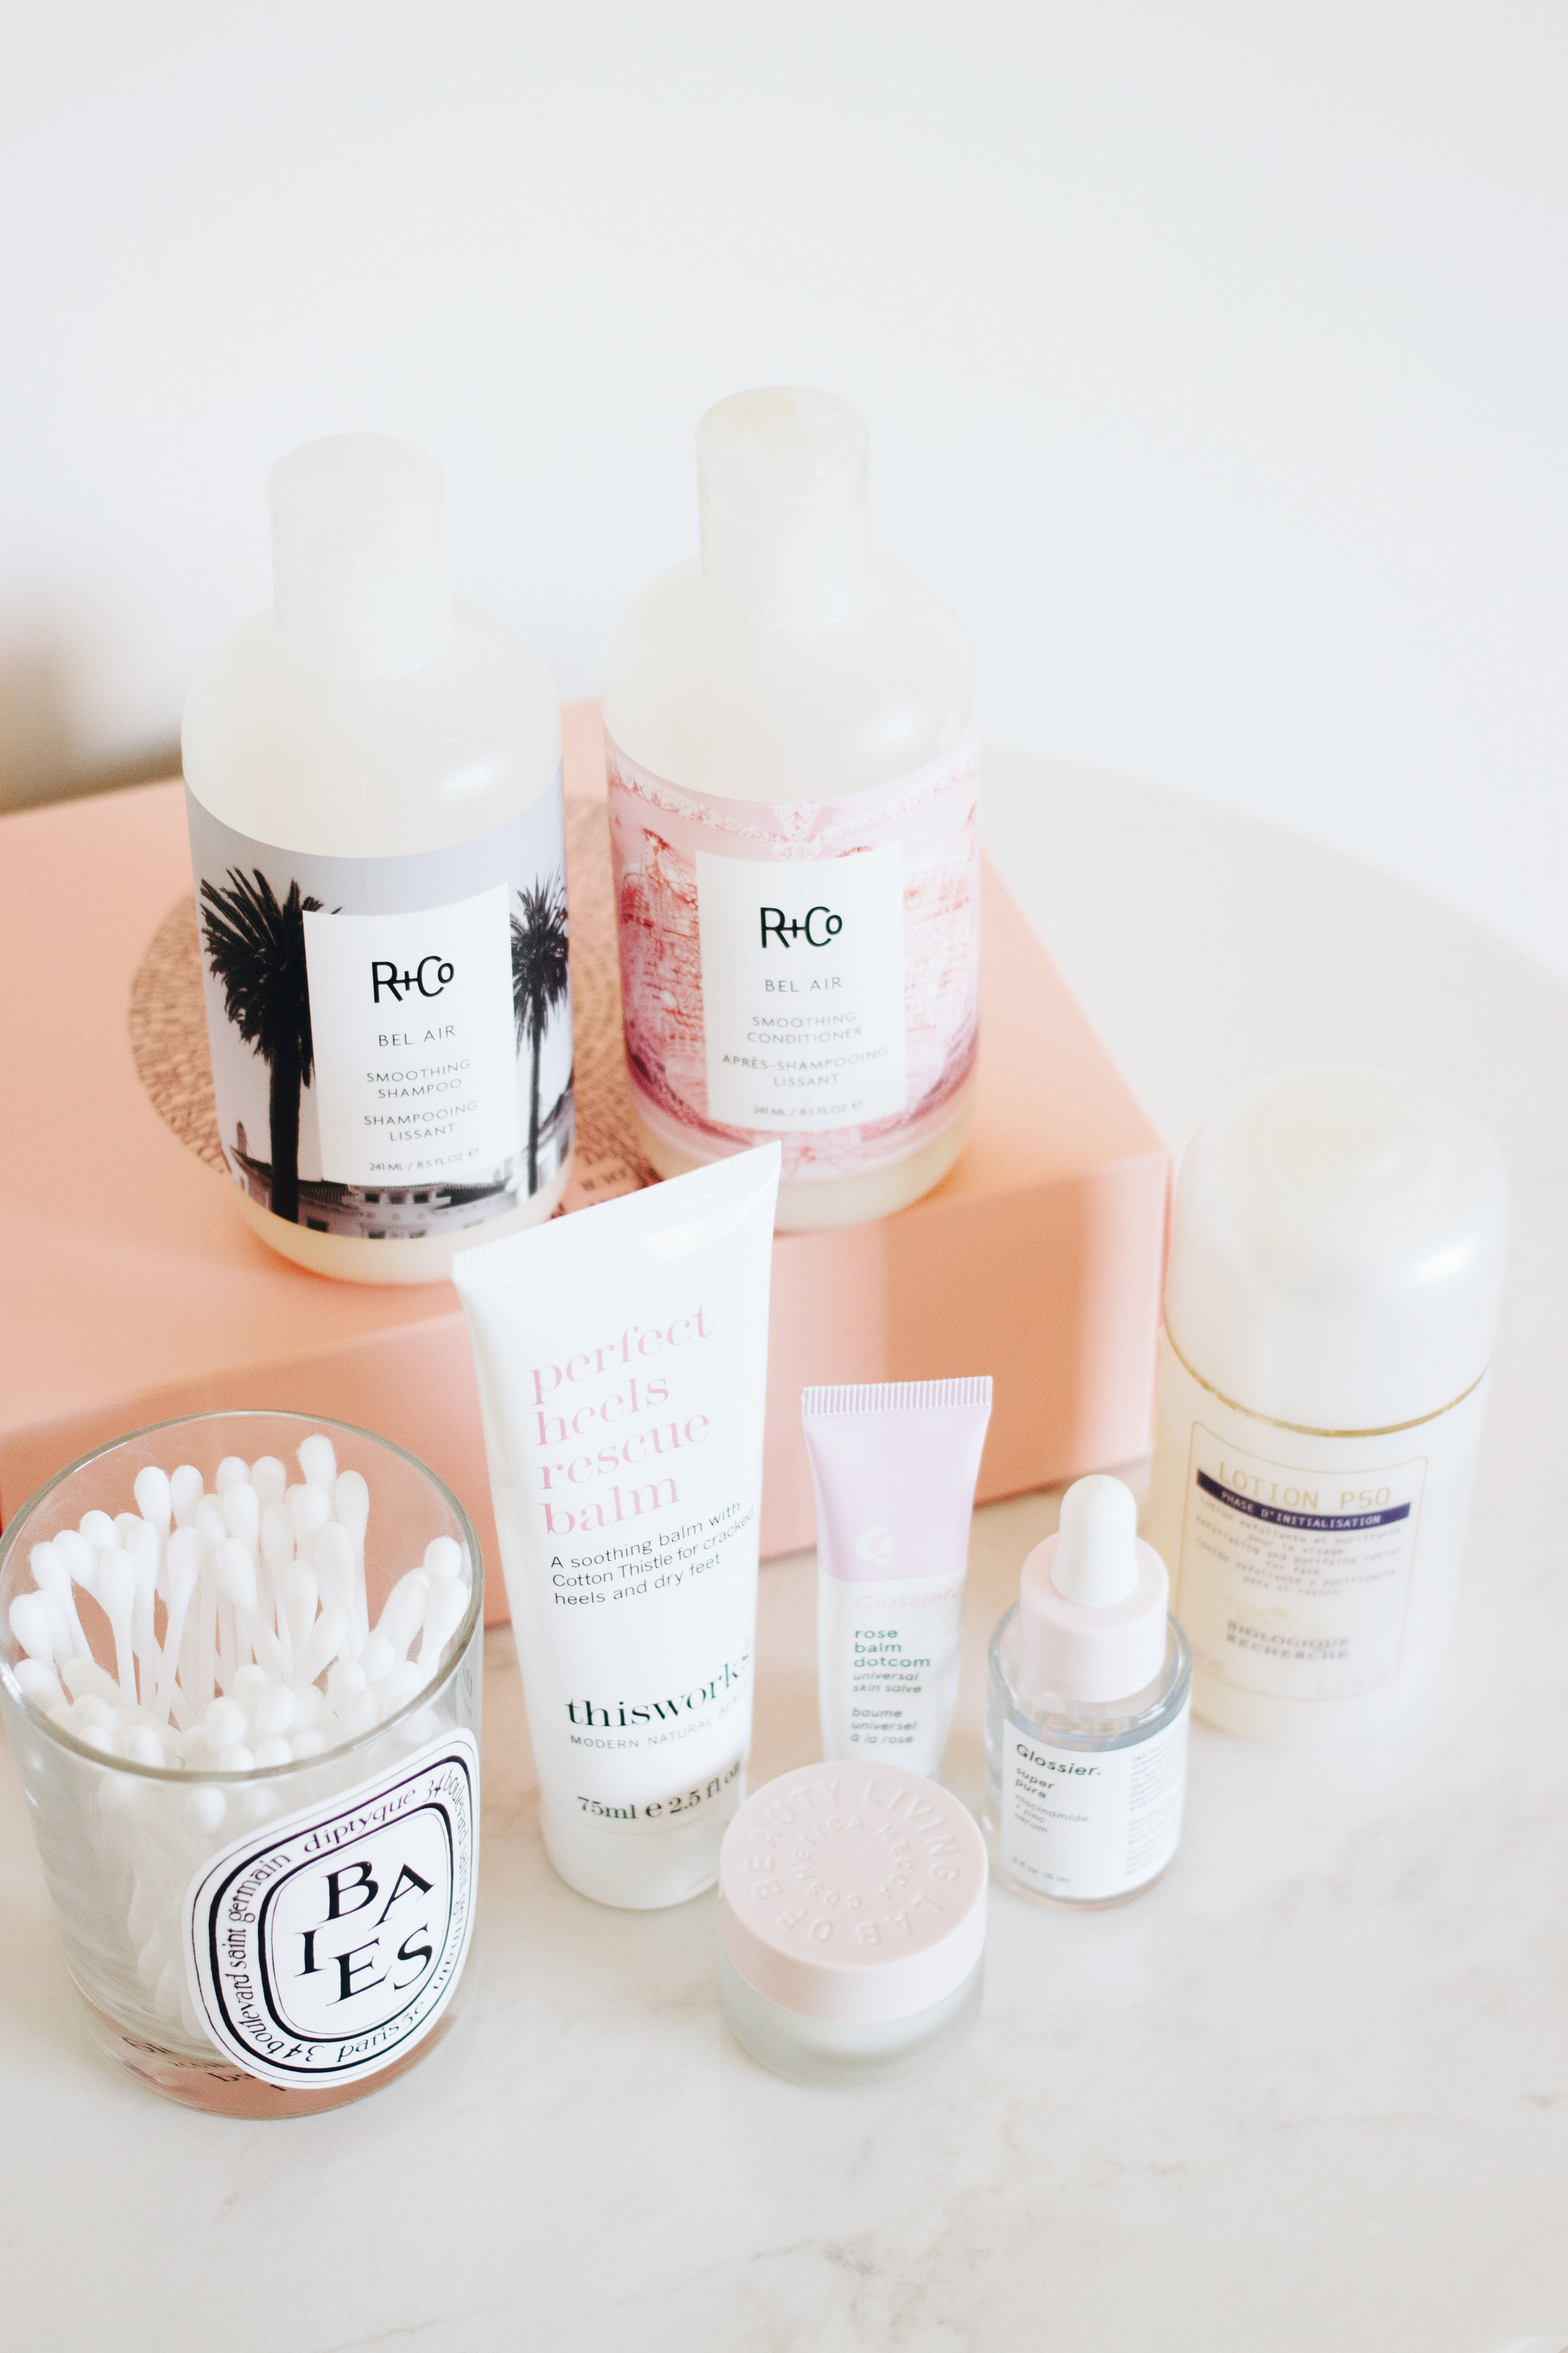 SkincareToner - I didn't try any new cleansers in 2017, though I did welcome three new toners and I really loved them all. The first toner I tried this year was the Pixi Hydrating Milky Mist, which my lovely friend Jess picked up for me from the US. You can get Pixi in Sephora here in Australia, but while I was living in Melbourne (there are no Sephora stores in Perth), it was never in stock and online is even worse. A beauty blogger favourite, this mist is lightweight, feels super refreshing once it hits the skin and contains a host of wonderful ingredients including hyaluronic acid, provitamin A (an antioxidant,not a retinoid derived from vitamin A) and linoleic acid (reduces redness and soothes irritation). Once I've finished this bottle up, I'm keen to give the Saturday Skin Daily Dew Hydrating Essence Mist a go, but it's definitely a contender for a repurchase one day.I didn't get the chance to talk about these next two toners this year, but I've got a post dedicated to toner coming in the near future, so rest assured, I'll delve into further detail there. For now, I hope my quick-fire reviews will suffice!